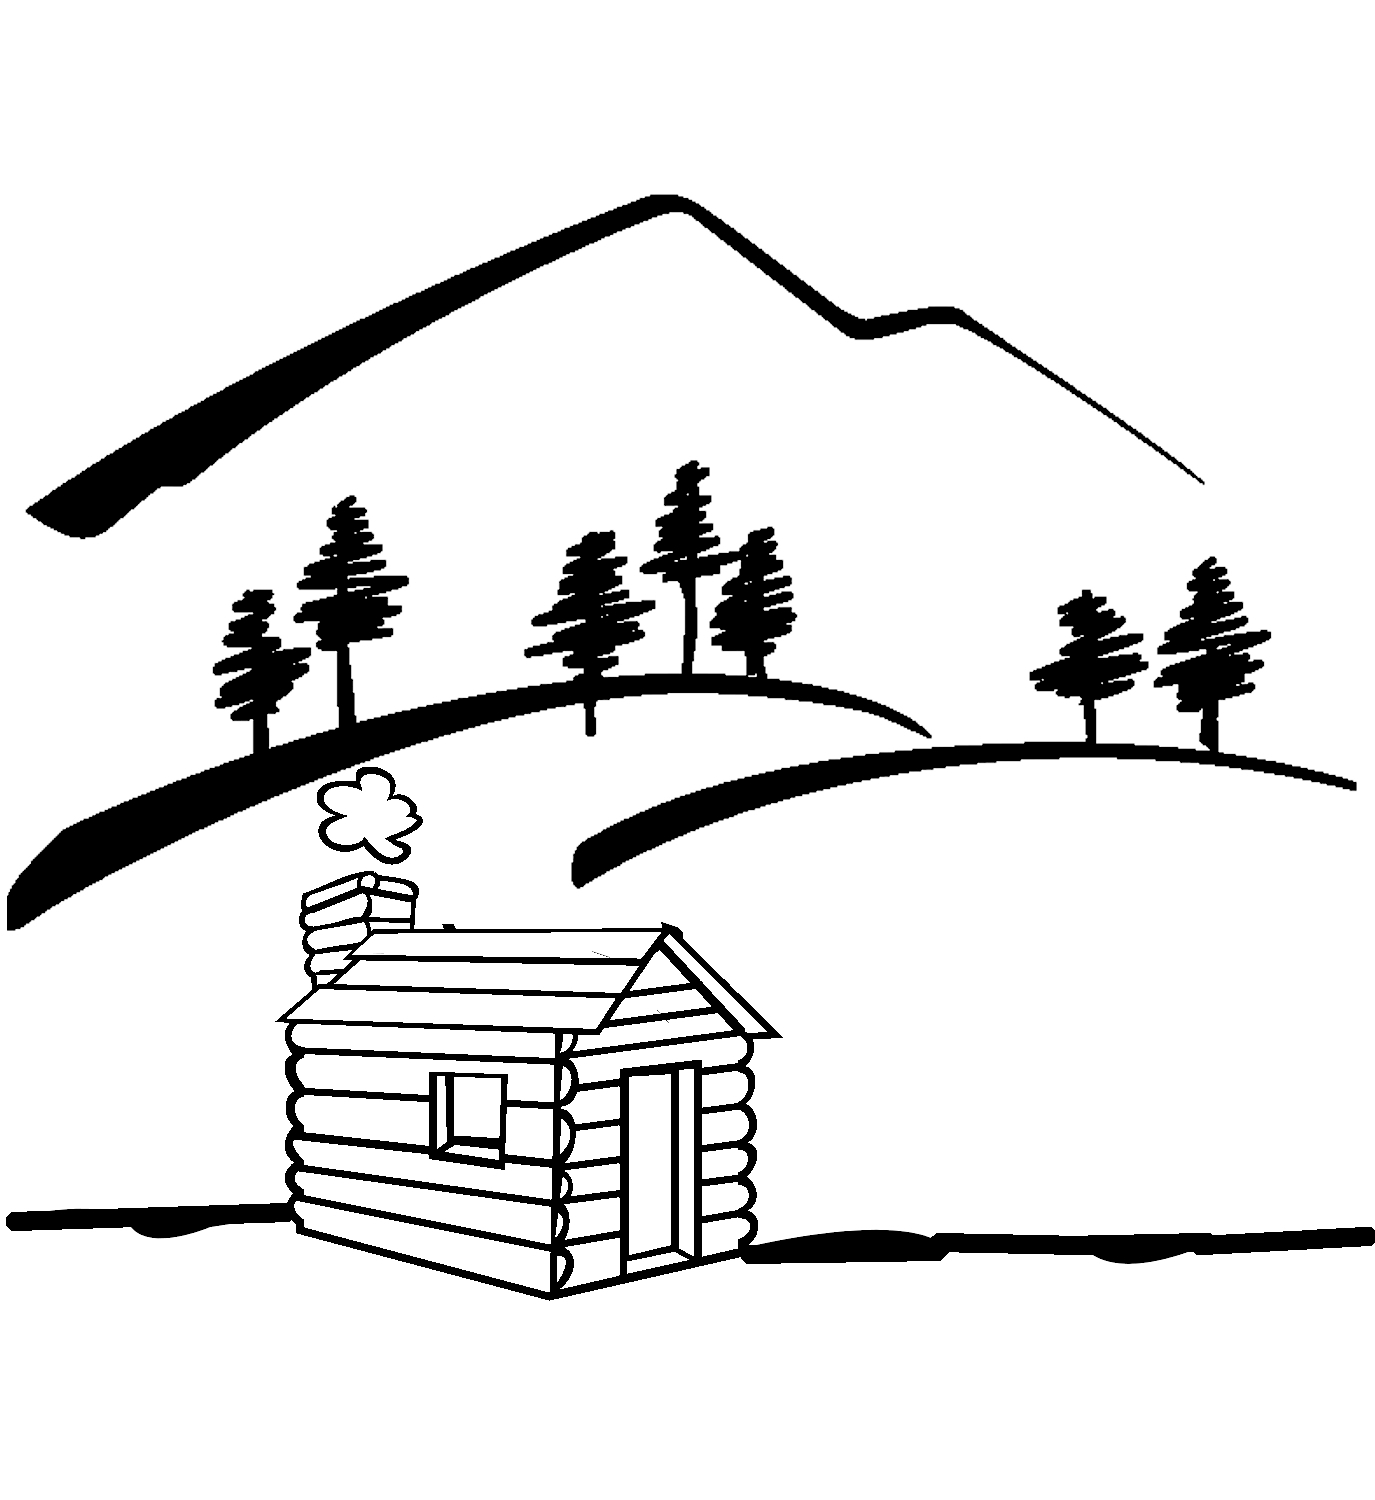 Free Cabin Cliparts, Download Free Clip Art, Free Clip Art on.